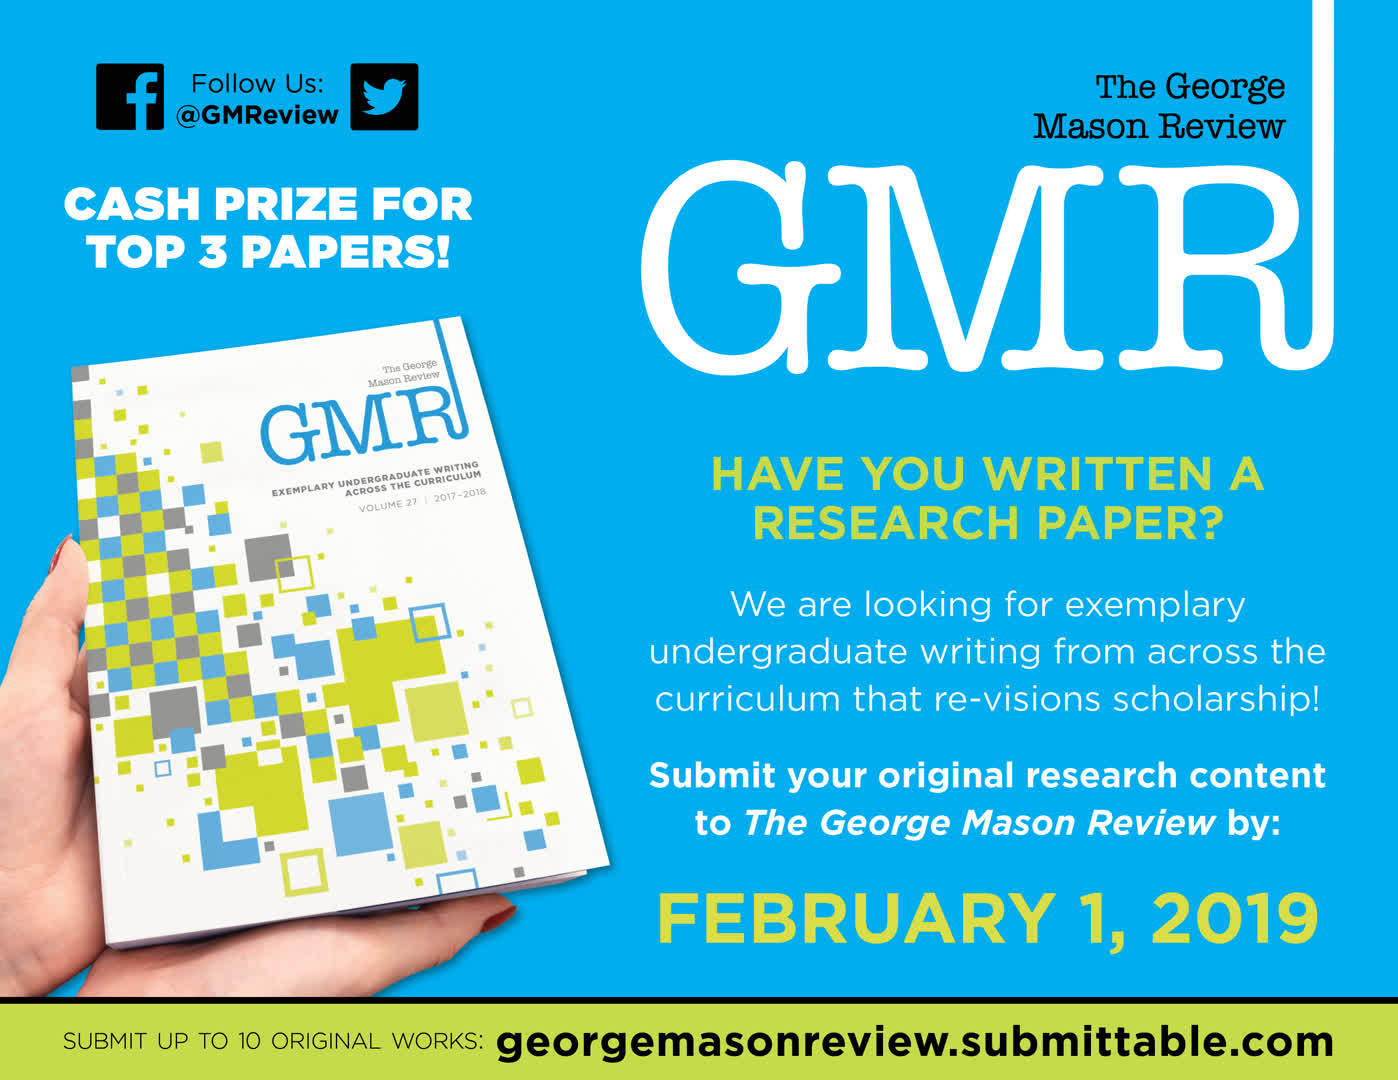 Information regarding GMR Content Submission Flyer 2018-2019 is as follows Create Your Own Tags: is #gmustudentmedia #scholarship #research #journal and Start date (when you would like your content to be posted) is November 13 2018 and End Date  (when you would like your content to be removed from the screens) is February 01 2019 and File is Browse and Name of Ad/Event is GMR Content Submission Flyer 2018-2019 and File Name is GMR-Submission-Flyer_ORCA_1118_comp.jpg and Name is Jason Hartsel and Email is jhartsel@gmu.edu and Panel for your ad to be displayed is Main and Affiliation is Mason Department and Group Name is Student Media - George Mason Review and